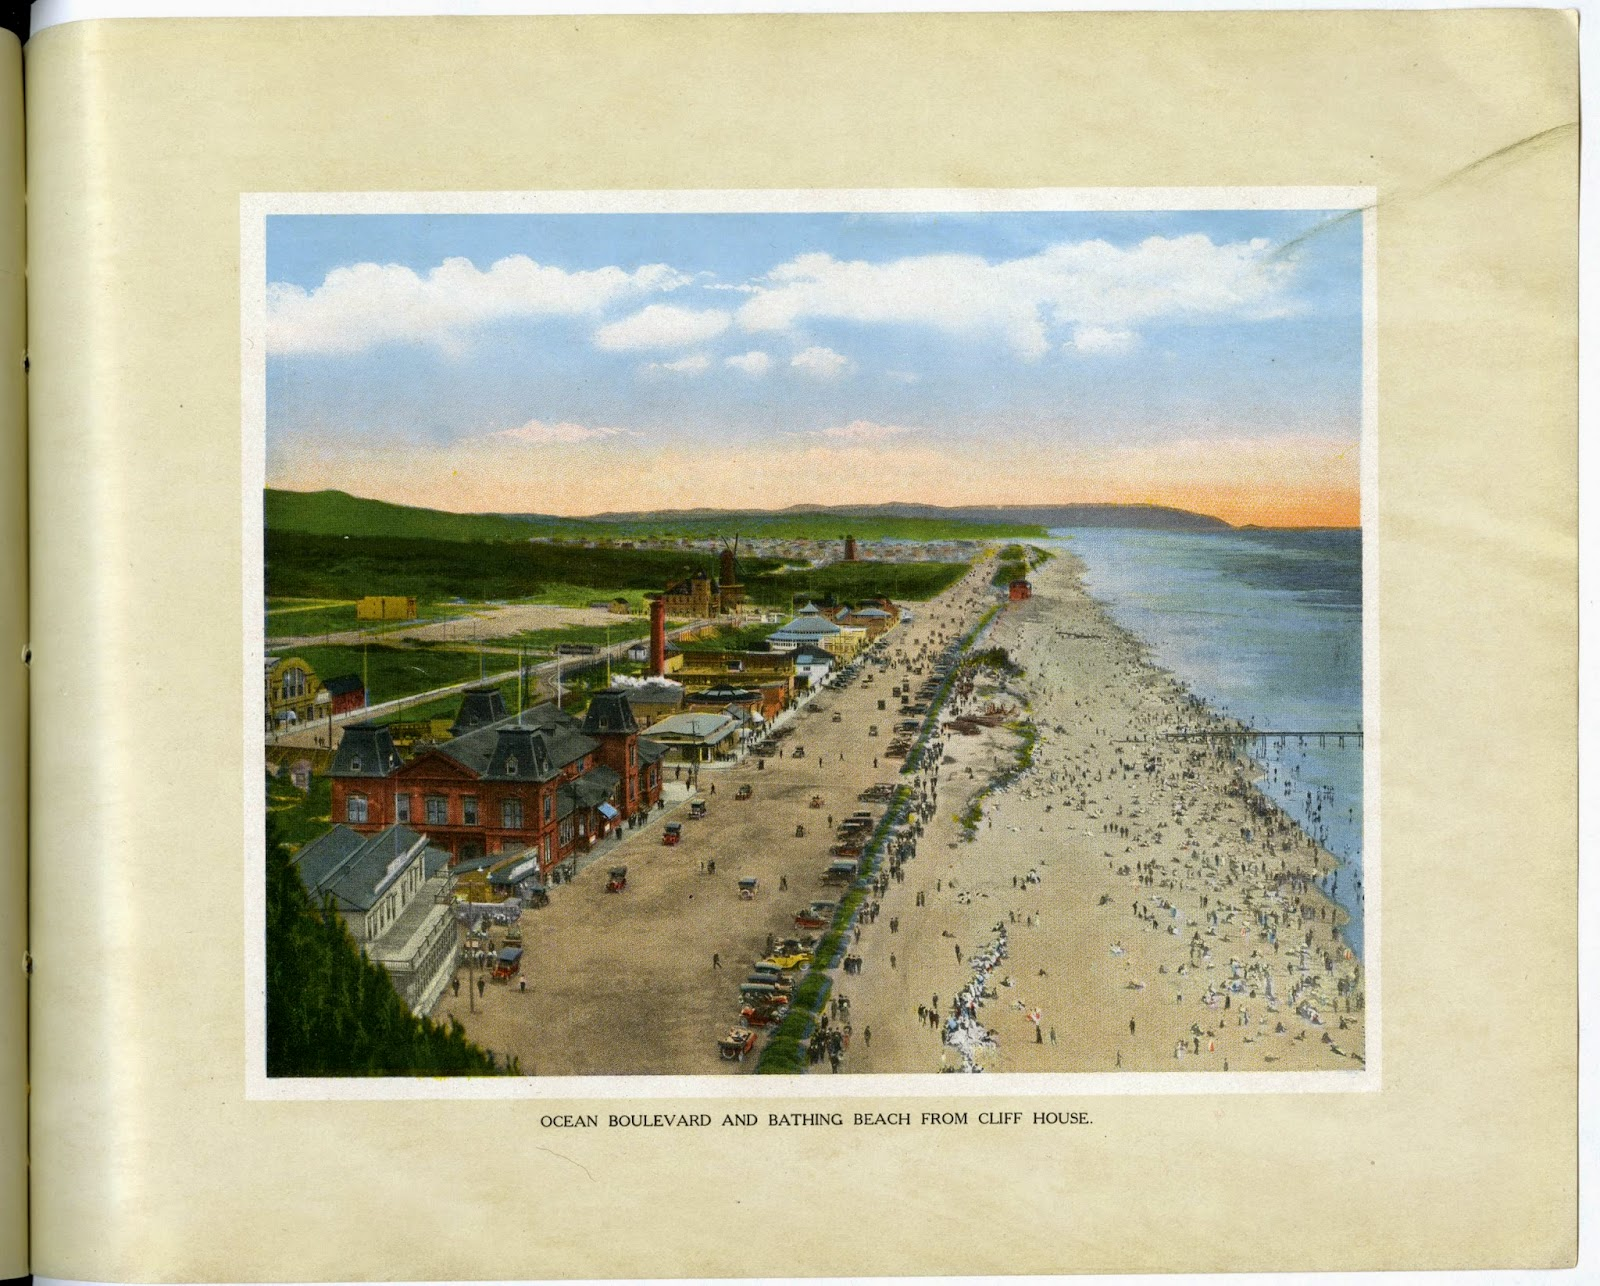 Ocean Boulevard and Bathing Beach from Cliff House